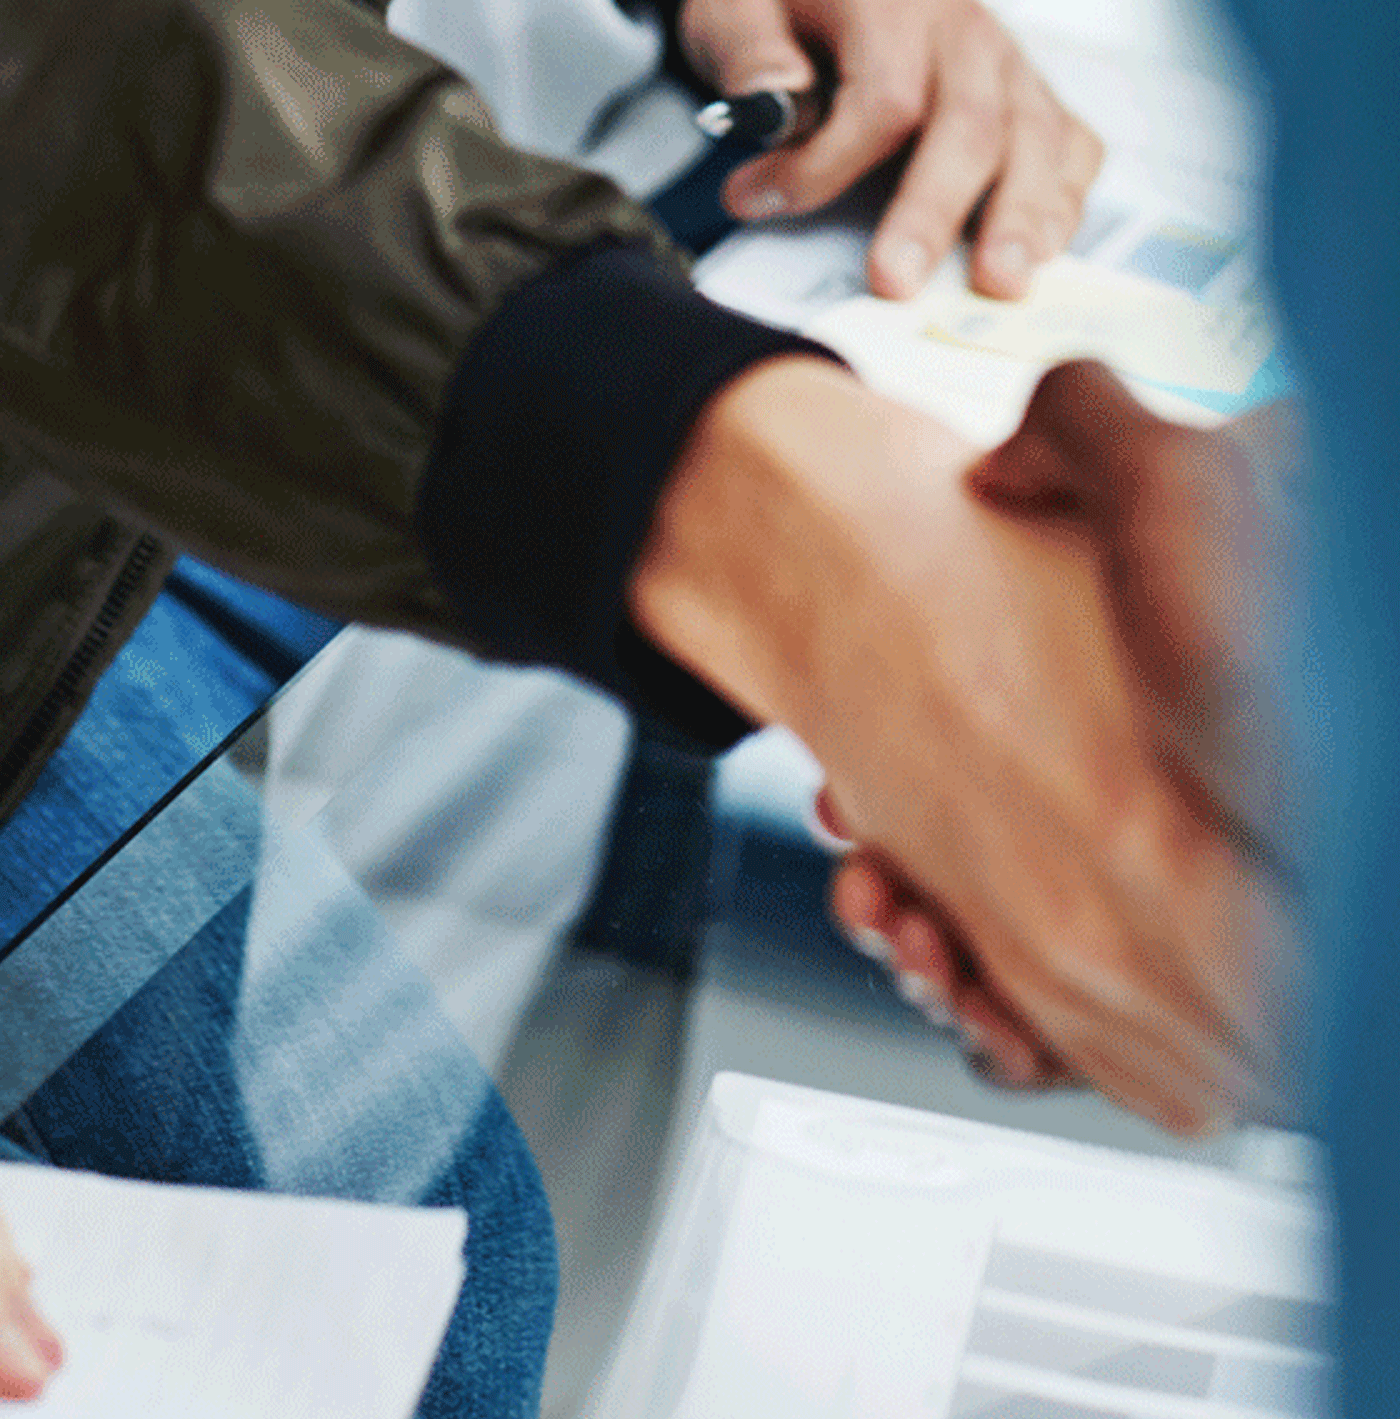 A closeup of a handshake, representing the nonprofit financial statements.